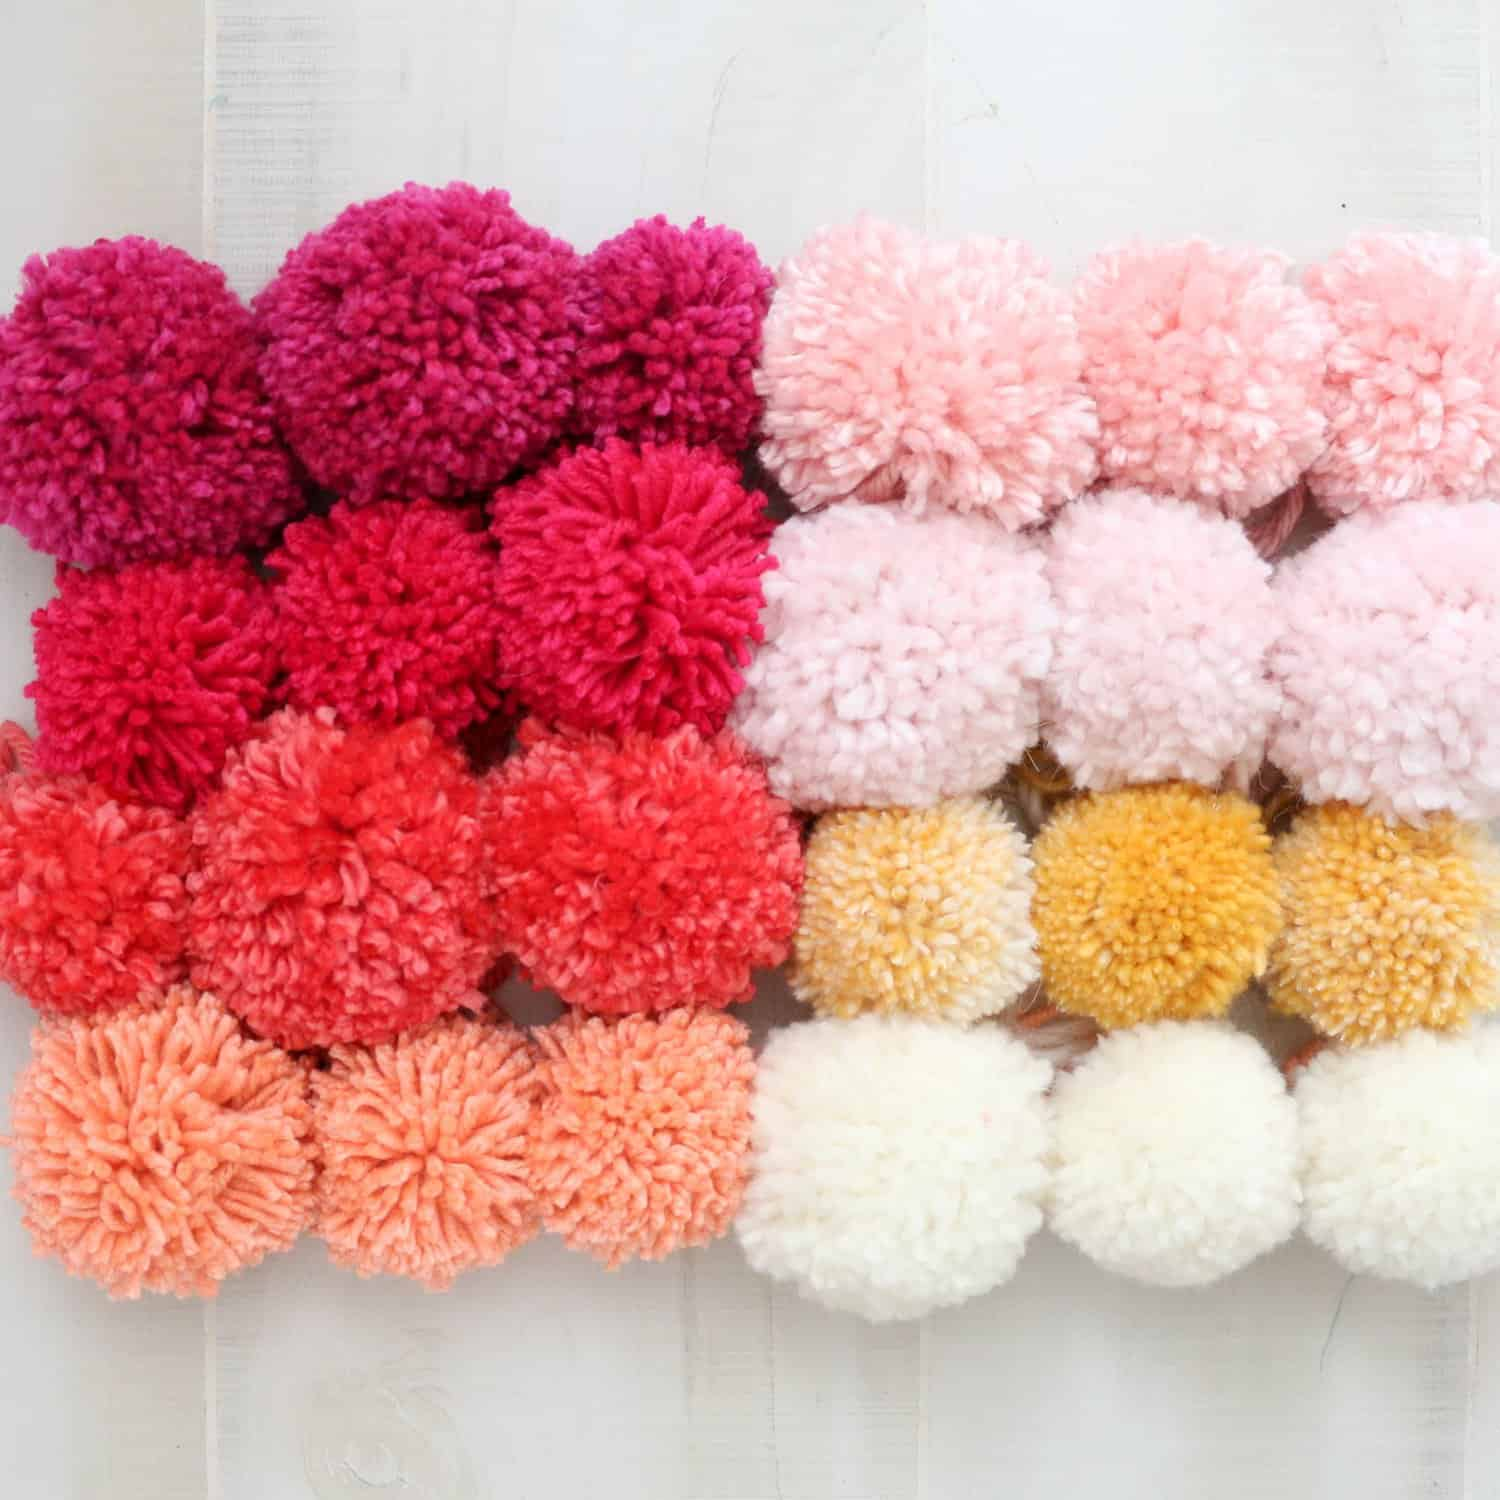 Make your own pom pom basket